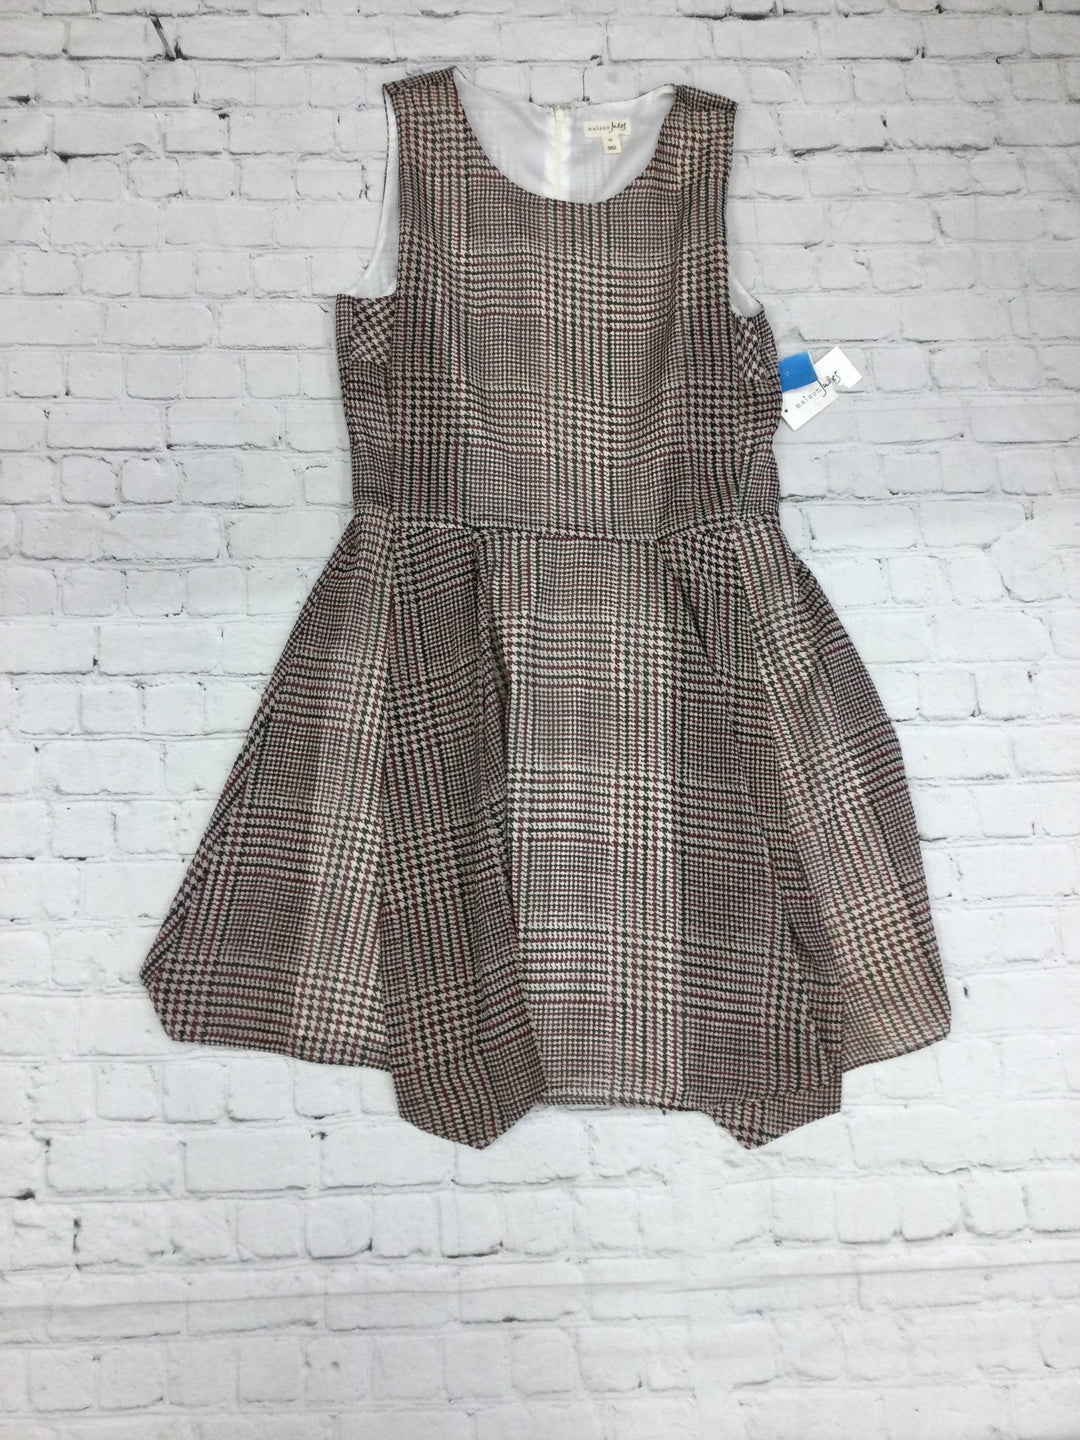 Primary Photo - brand: maison jules , style: dress short sleeveless , color: houndstooth , size: 10 , sku: 125-4655-4837